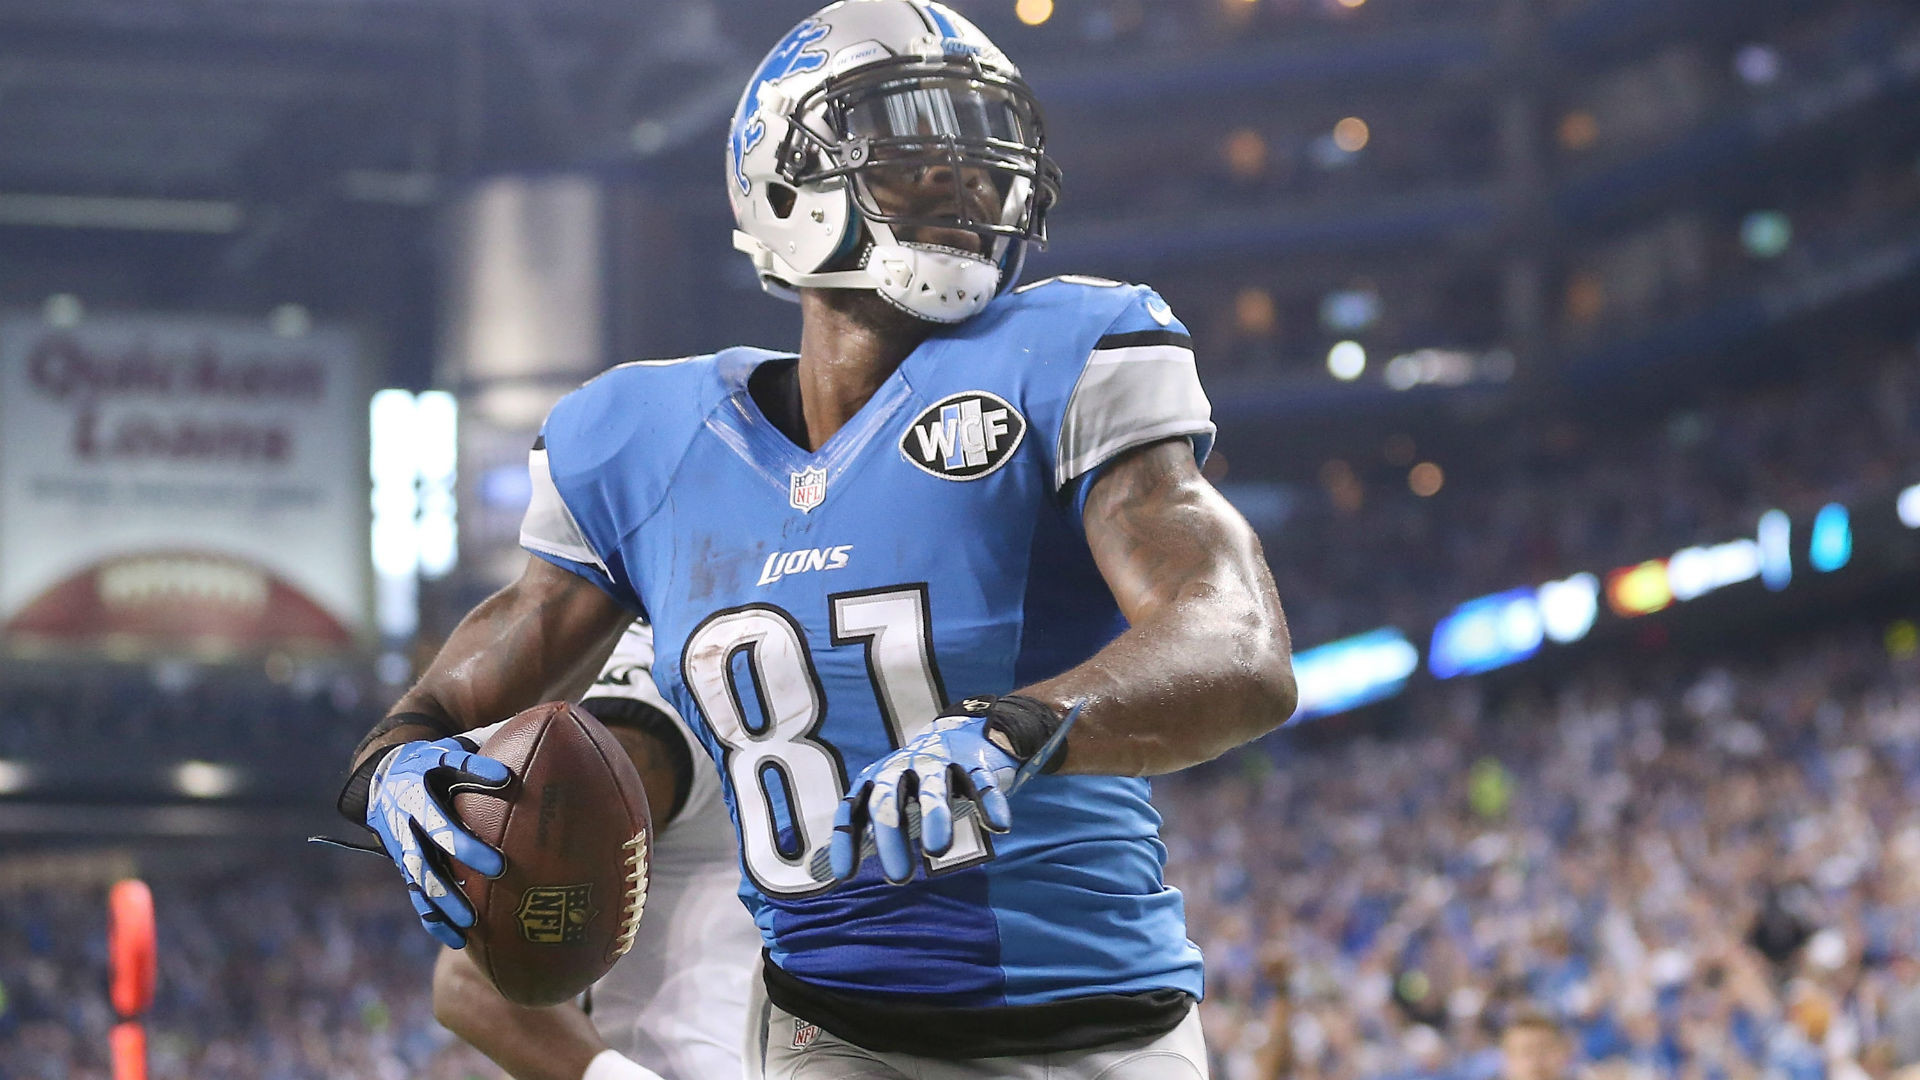 1920x1080 Megatron sets Thanksgiving touchdown record as Lions cook Eagles | NFL |  Sporting News